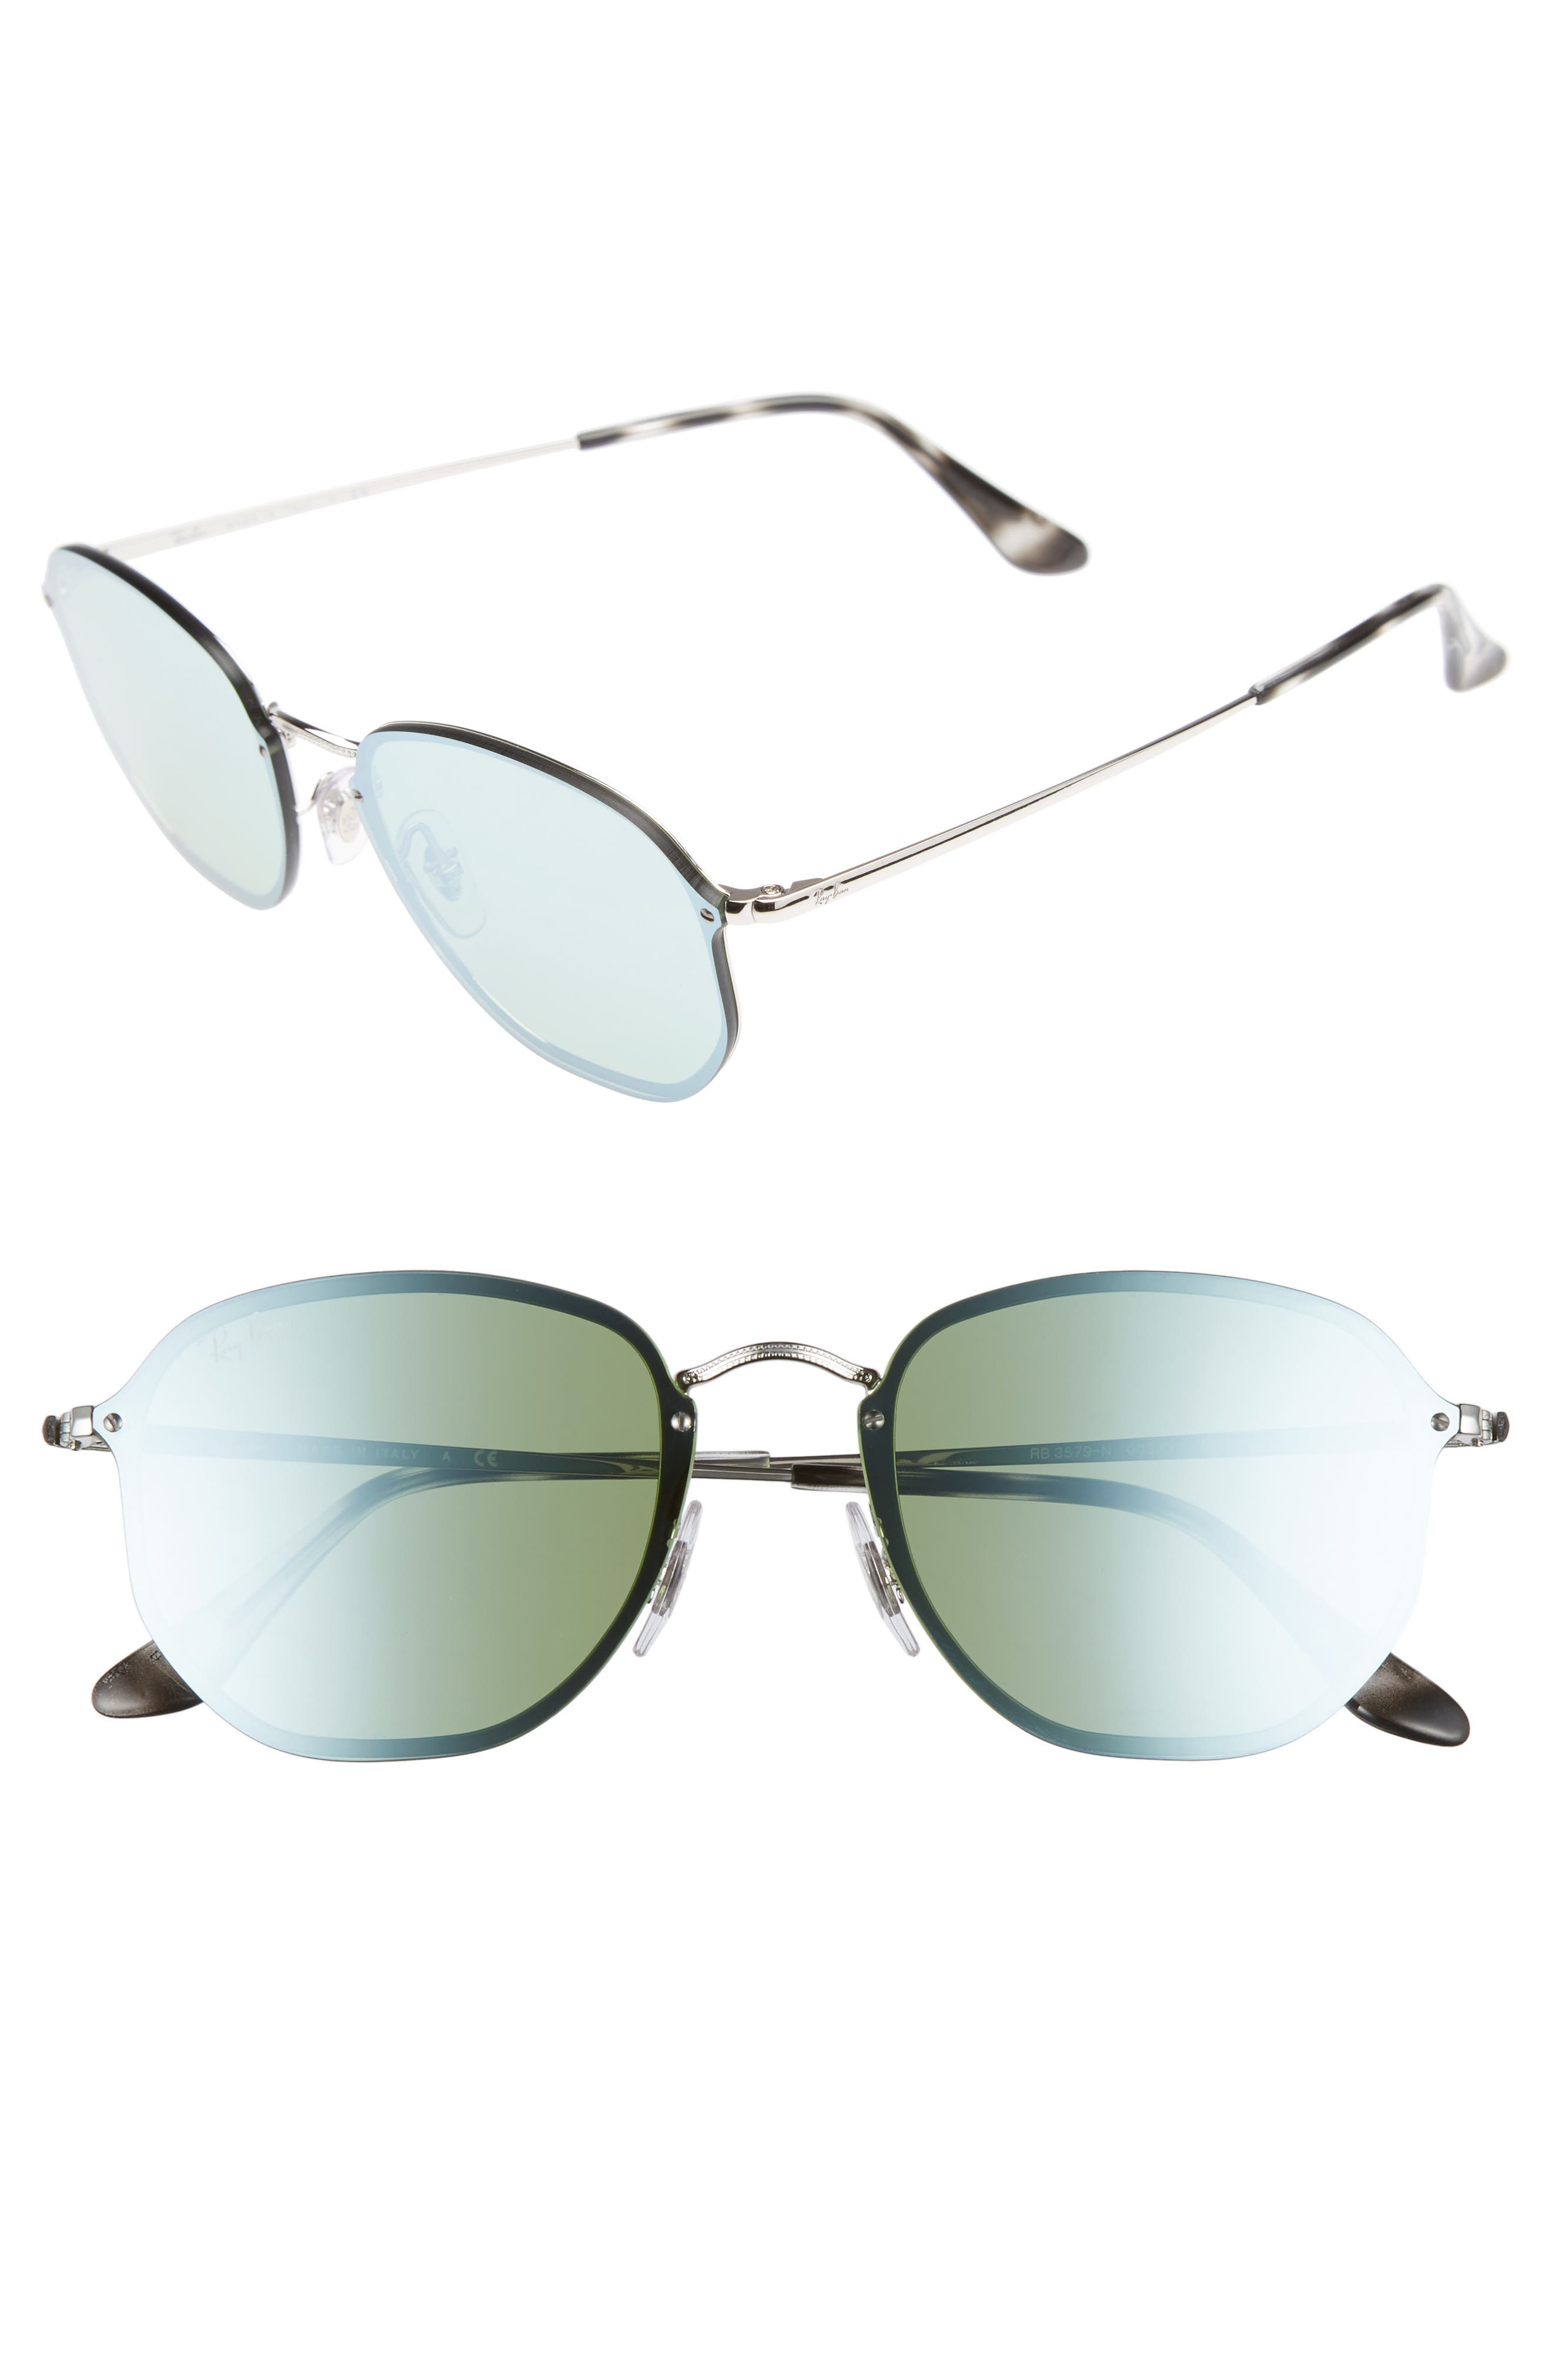 Ray-Ban Rimless 58mm Sunglasses